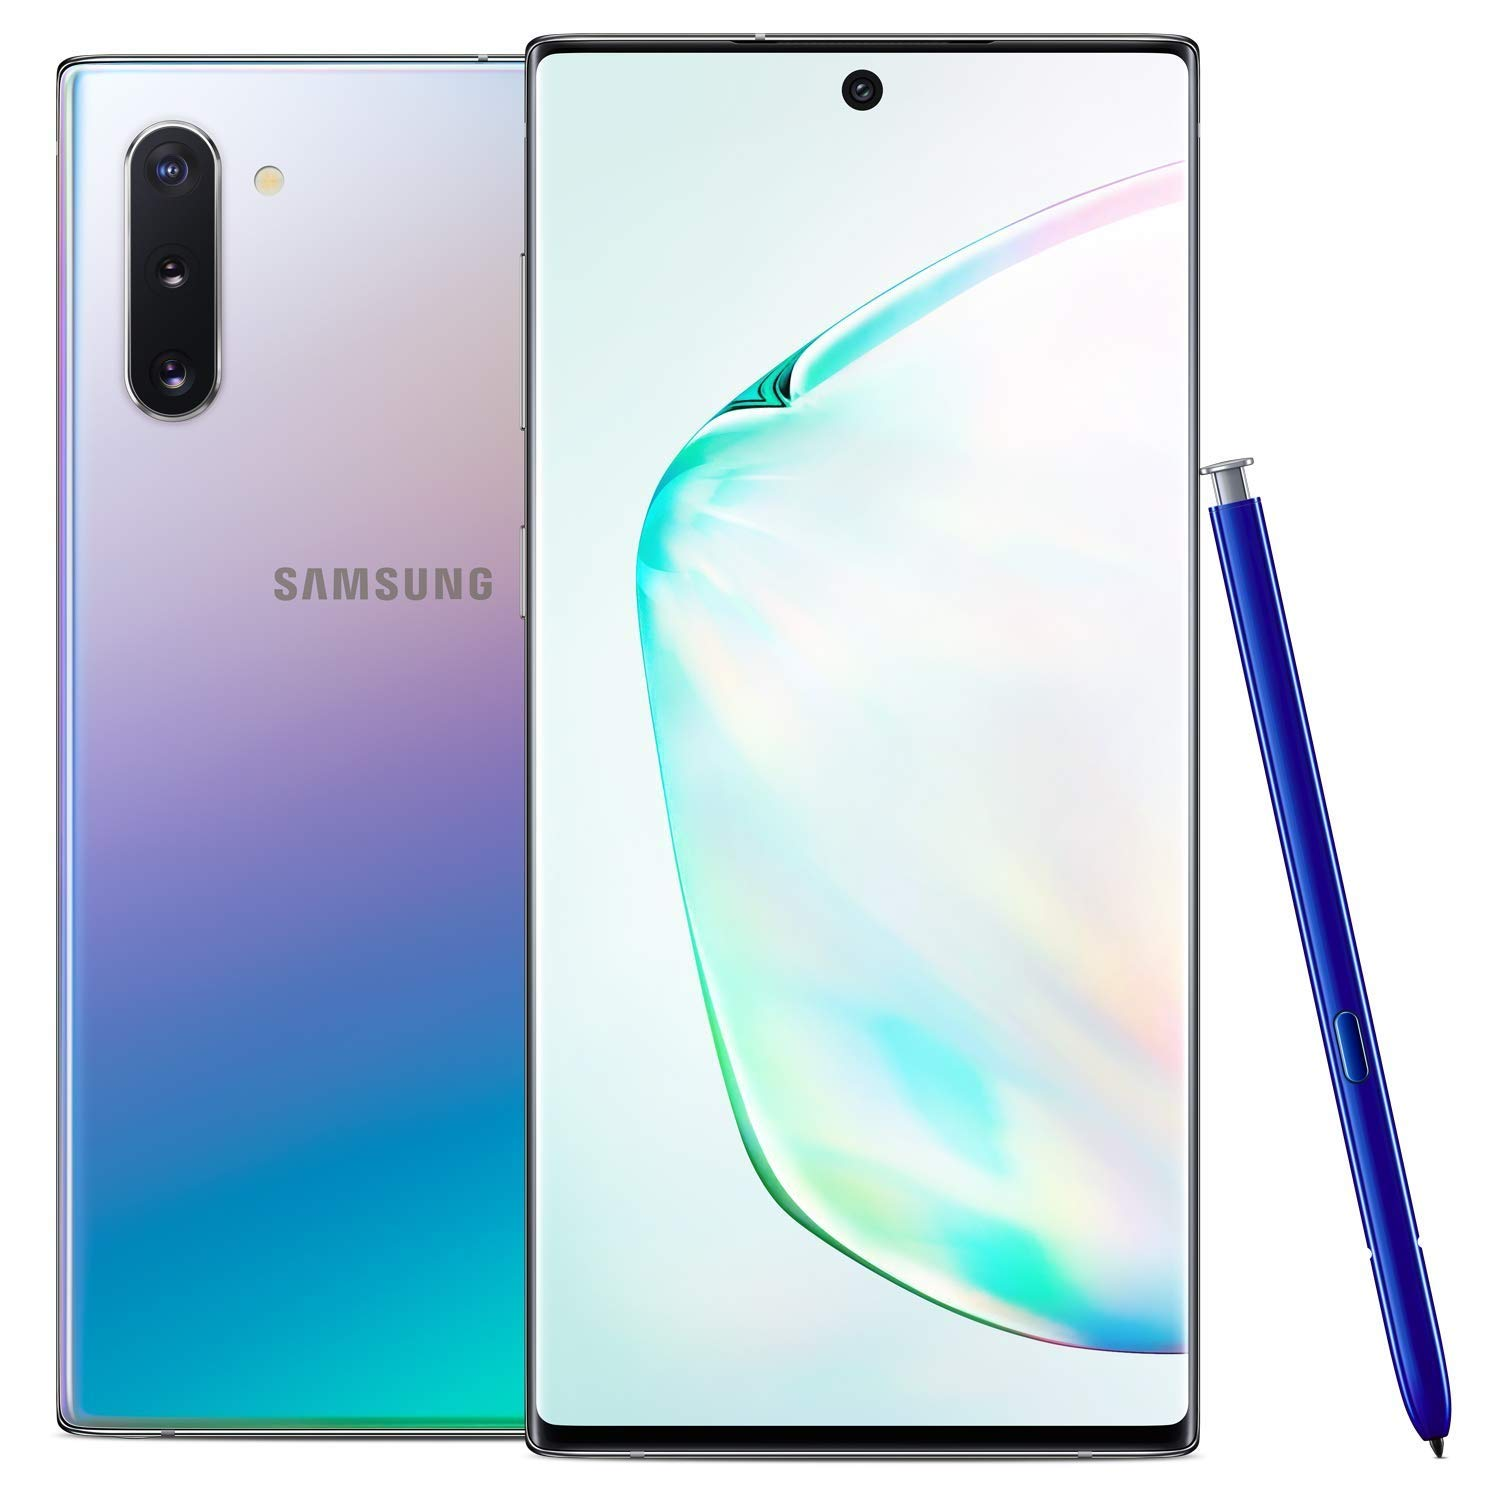 Samsung Galaxy Note 10 N970u 256gb Android Smartphone Metropcs In Aura Glow Good Condition Used Cell Phones Cheap Metropcs Cell Phones Used Metropcs Phones Cellular Country